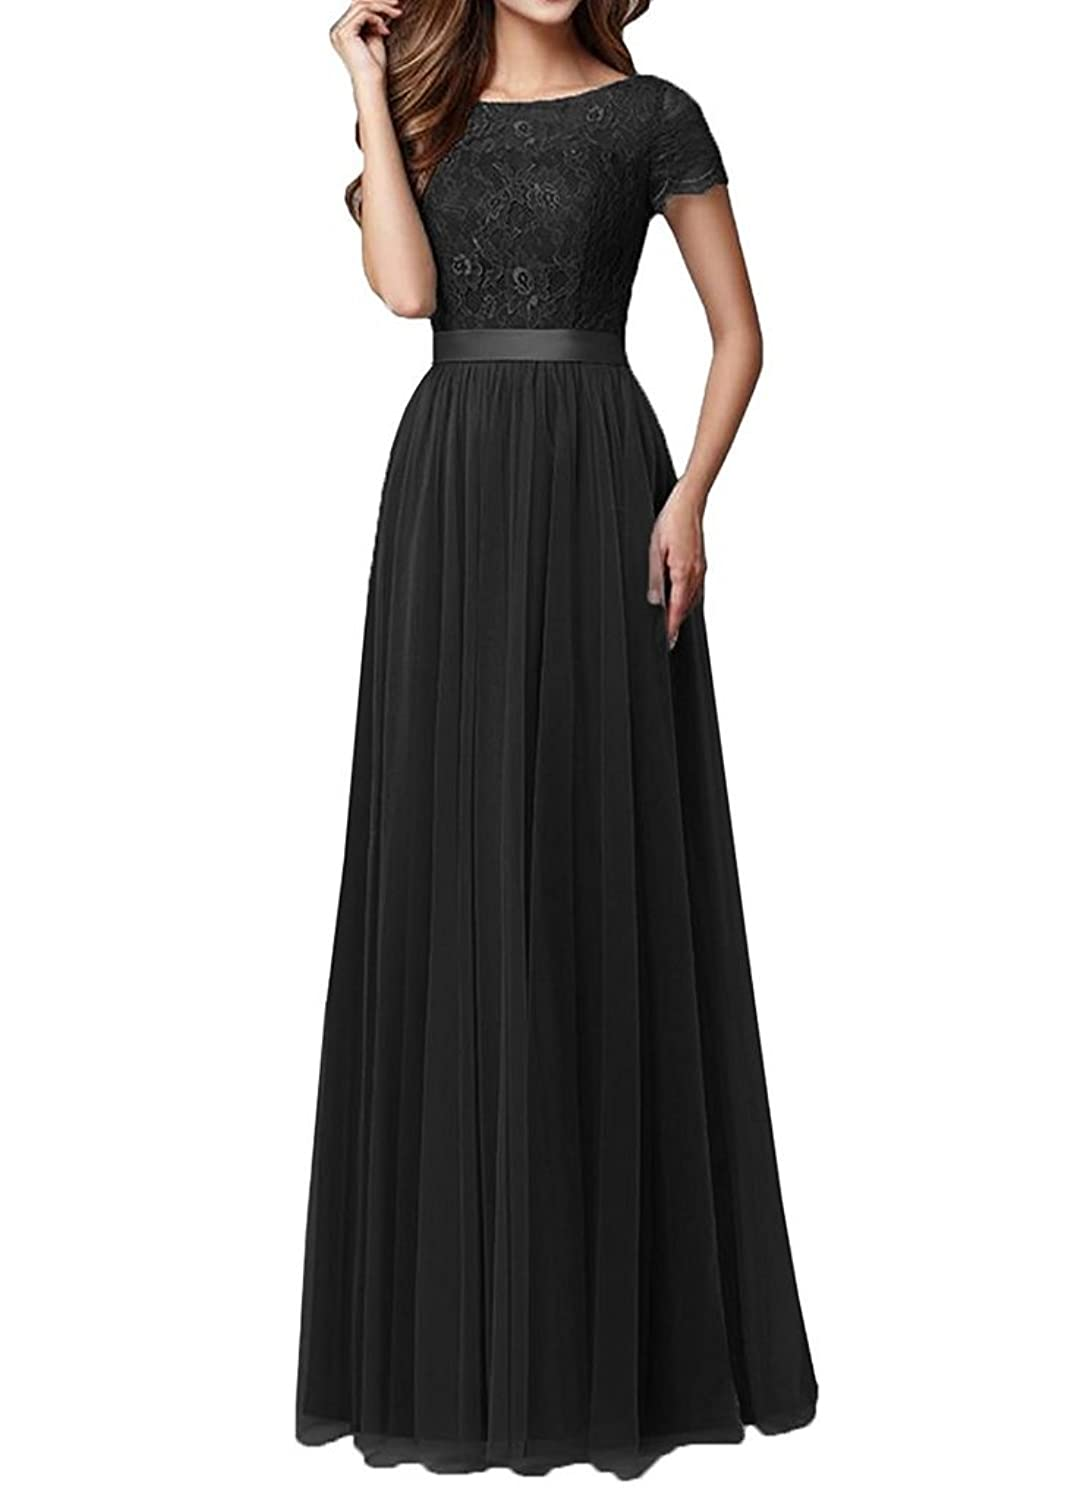 Kevins bridal tulle lace bridesmaid dresses 34 sleeves long prom kevins bridal womens lace bridesmaid dresses 2017 tulle long prom evening dress ombrellifo Images